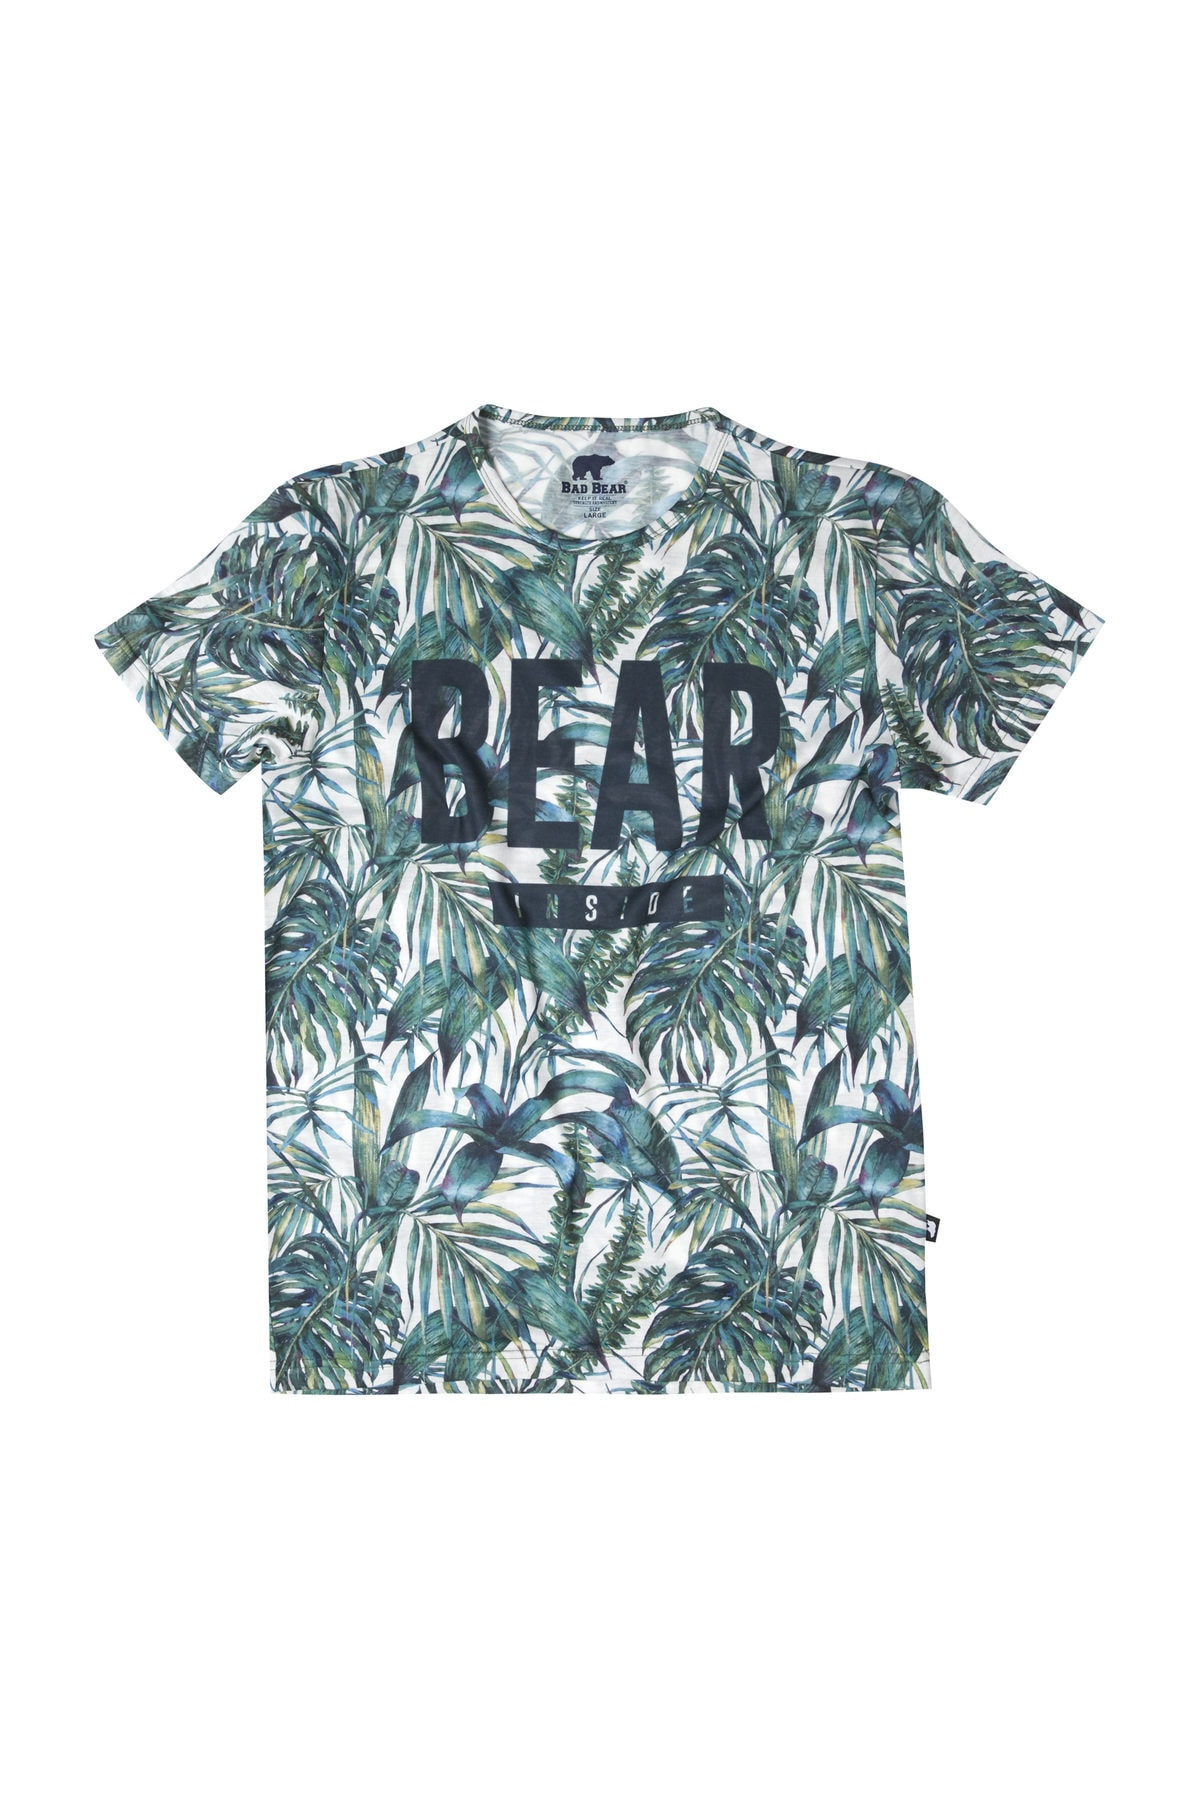 Bad Bear BEAR INSIDE OFF-WHITE 1